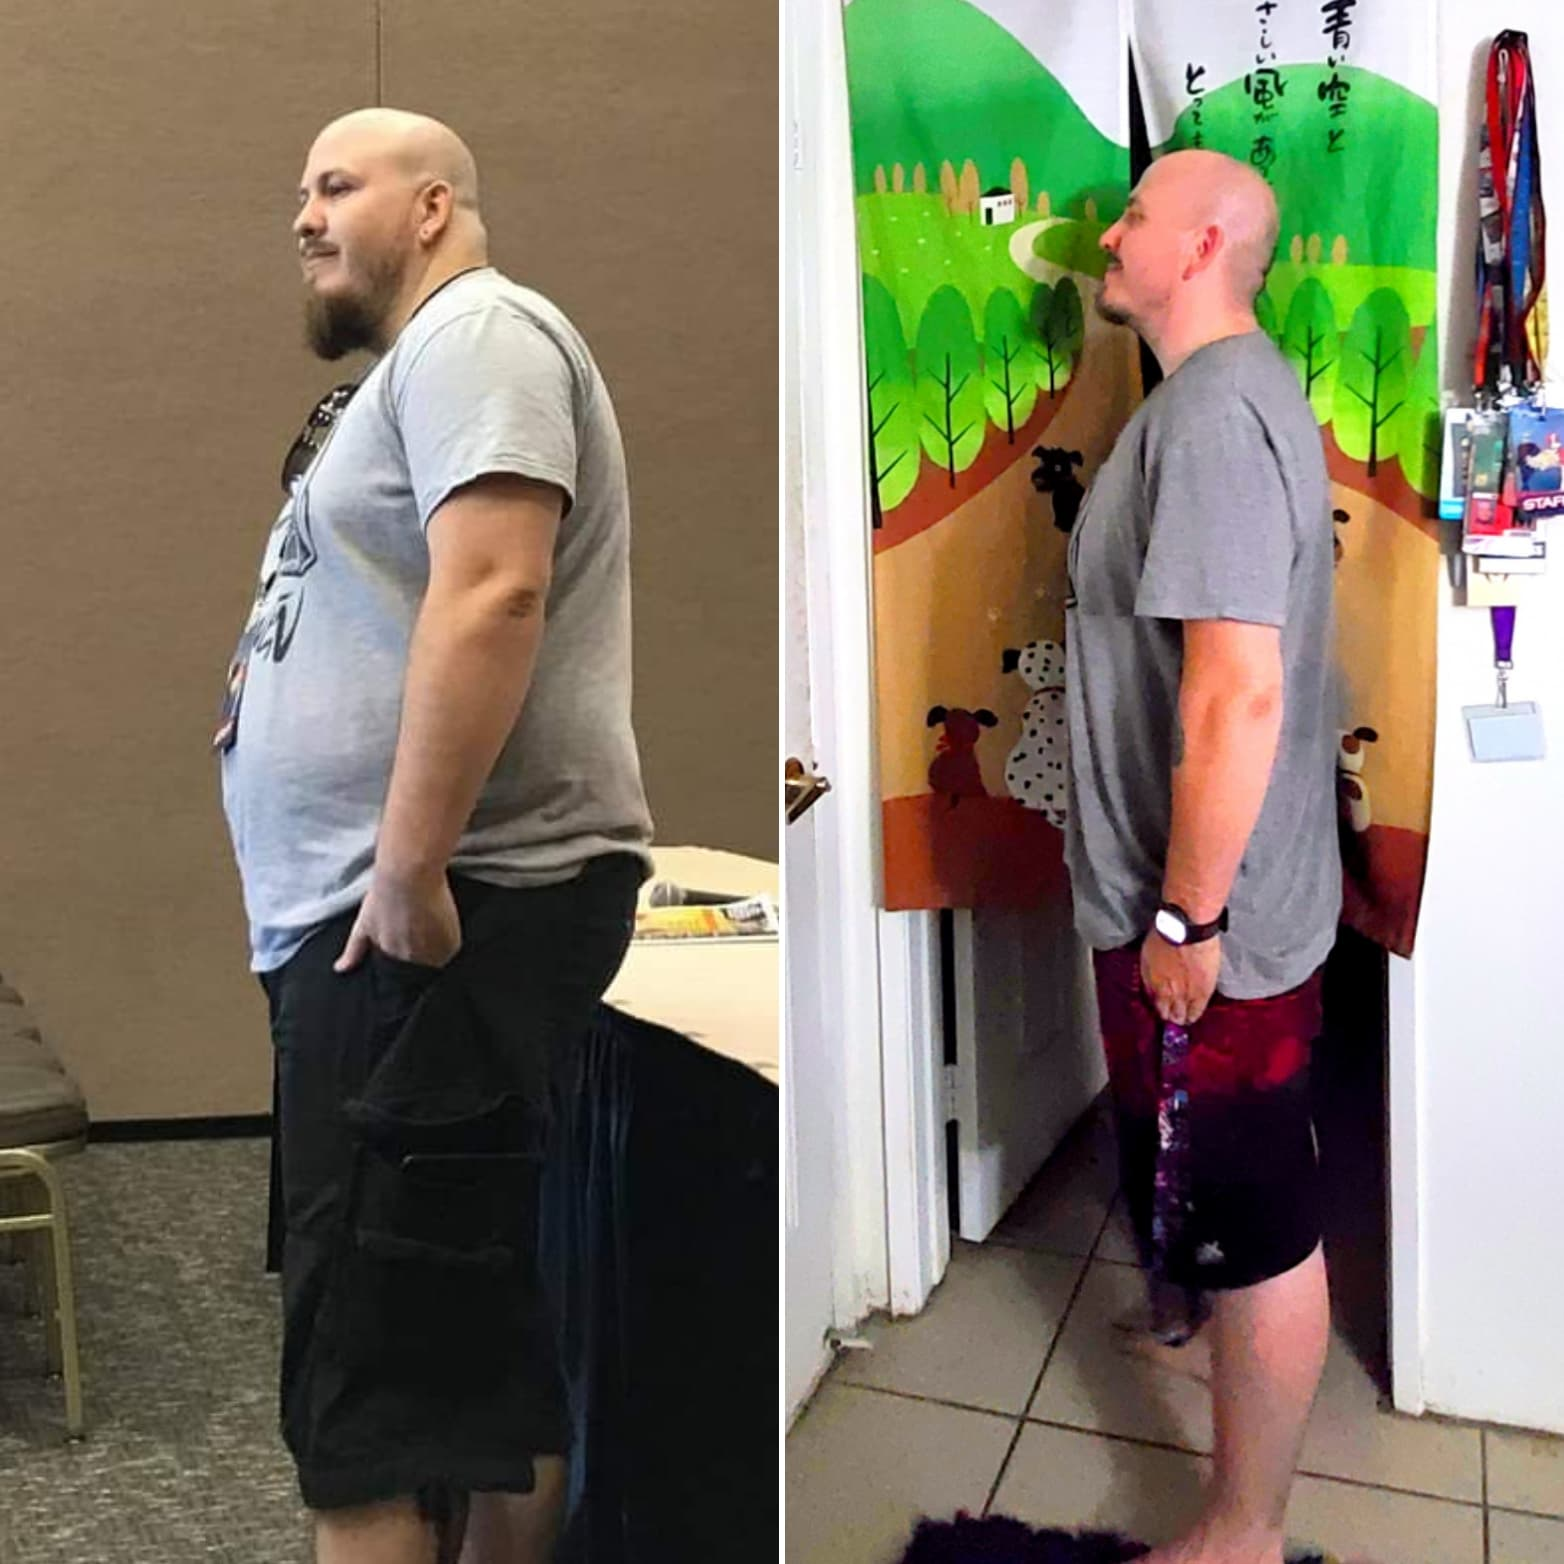 5 foot 7 Male 133 lbs Weight Loss Before and After 330 lbs to 197 lbs